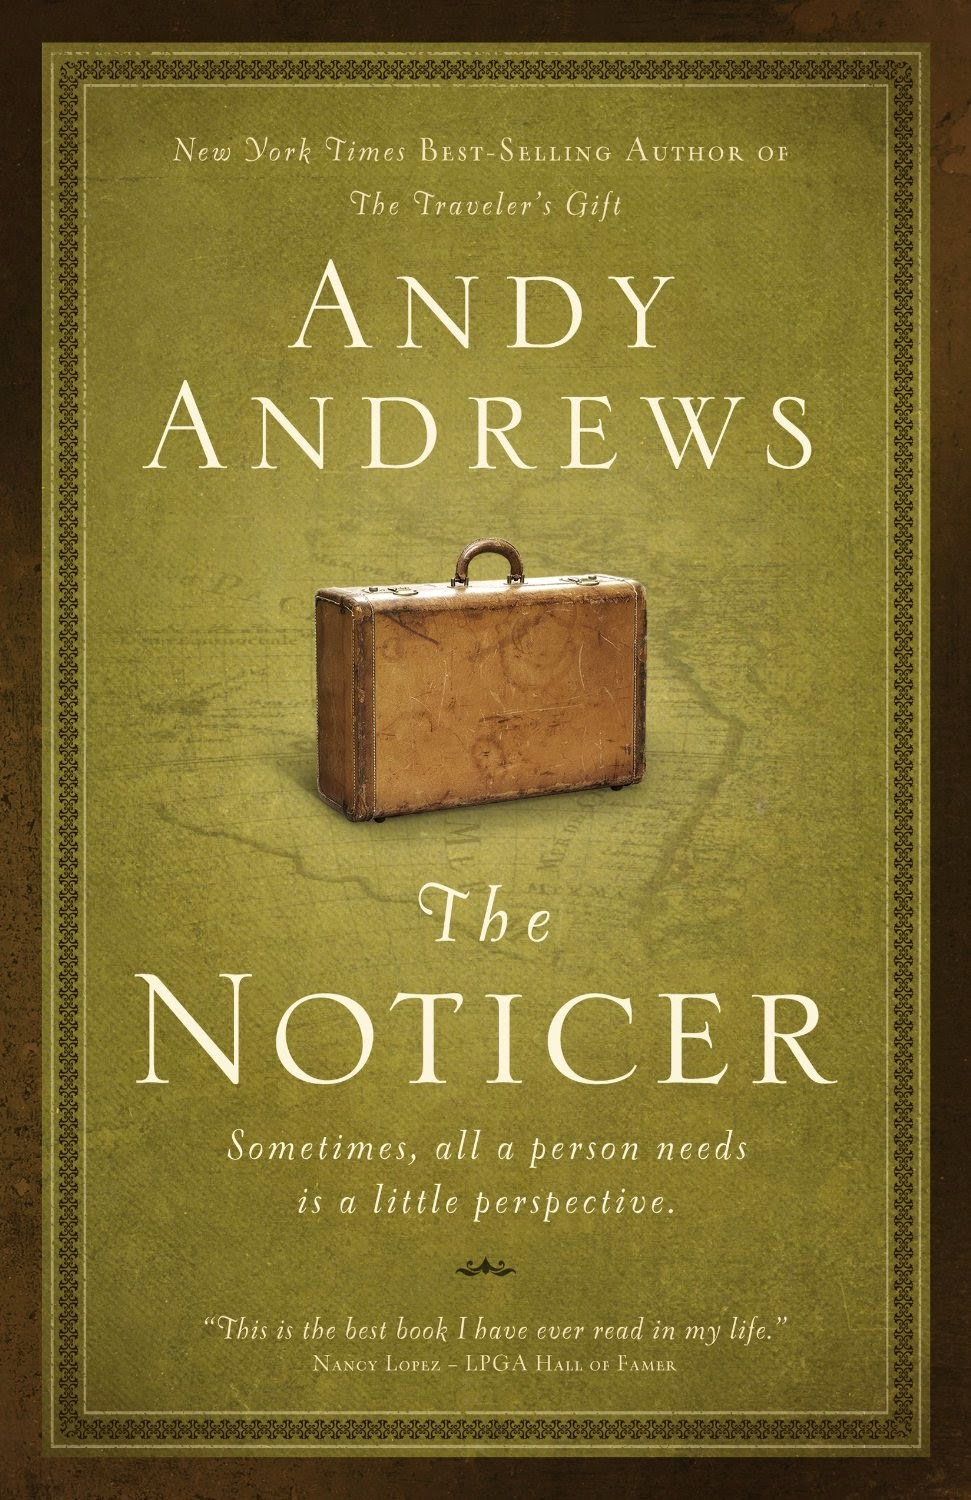 Recommended read: The Noticer